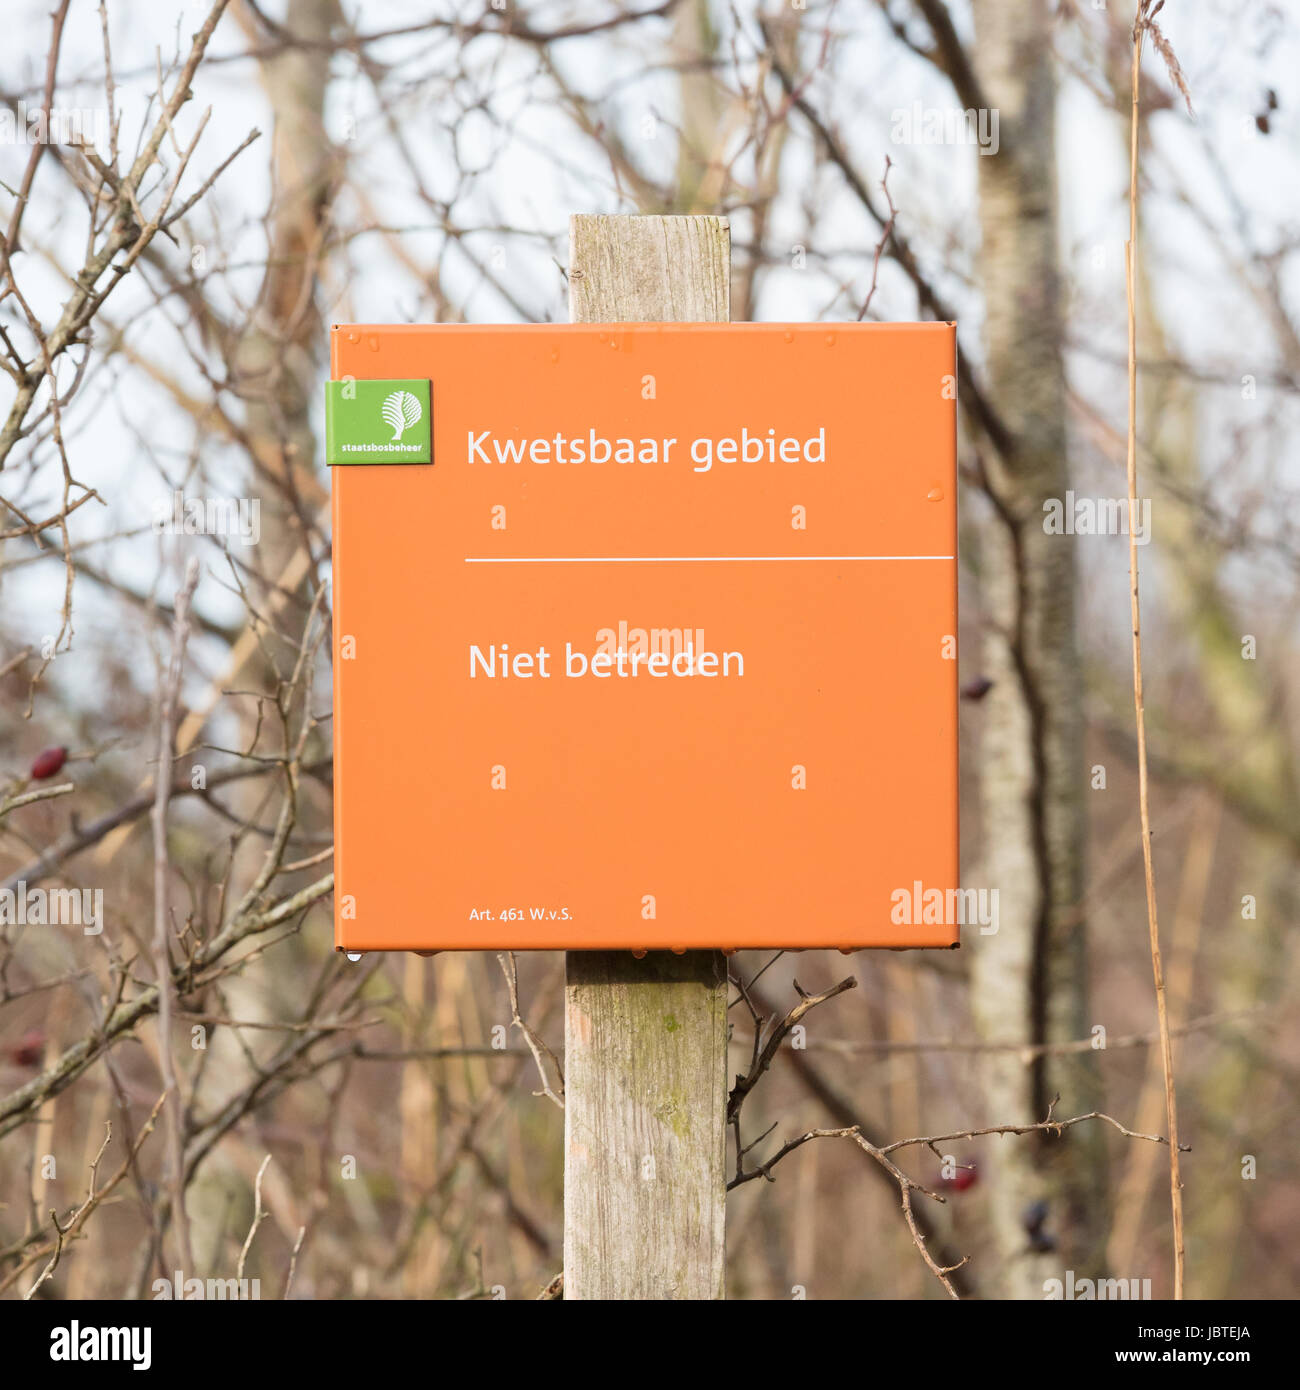 Lauwersoog; tourist sign saying 'no entry (niet betreden)'. Nature park - Stock Image